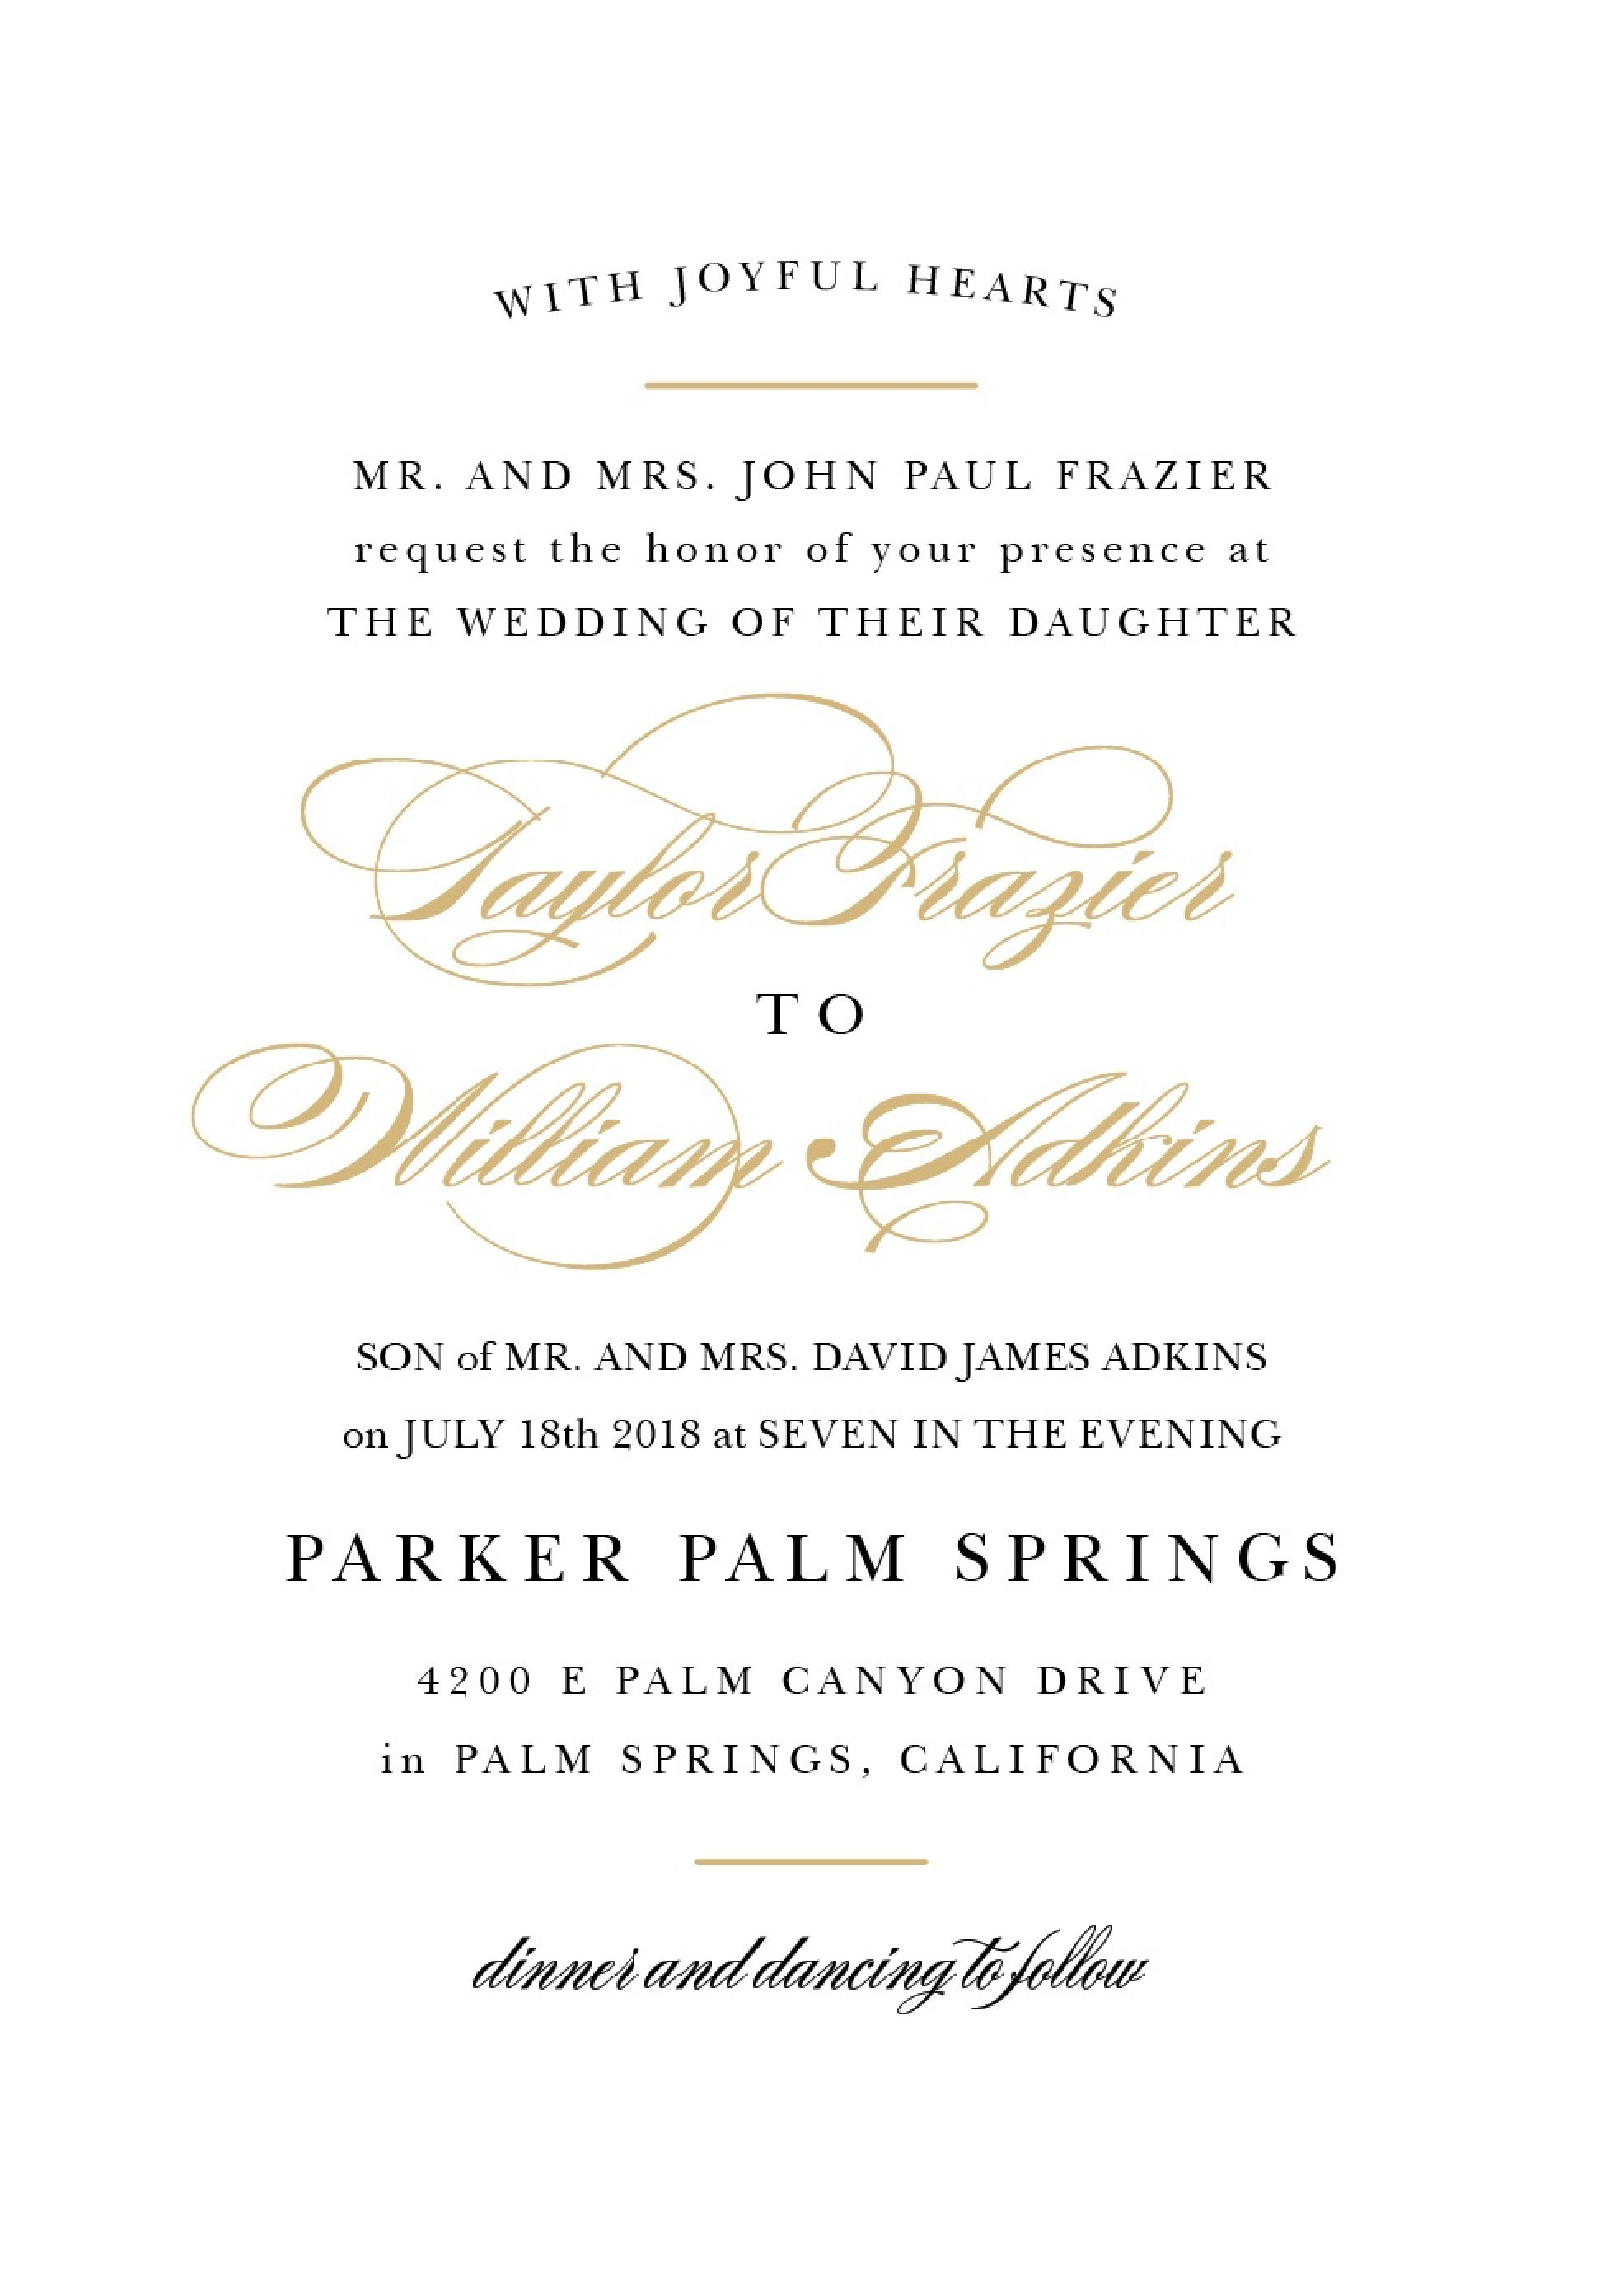 Wedding Invitations Match Your Color Style Free Pertaining To Wedding Invitation Wording Templates Wedding Invitation Quotes Wedding Invitations Examples